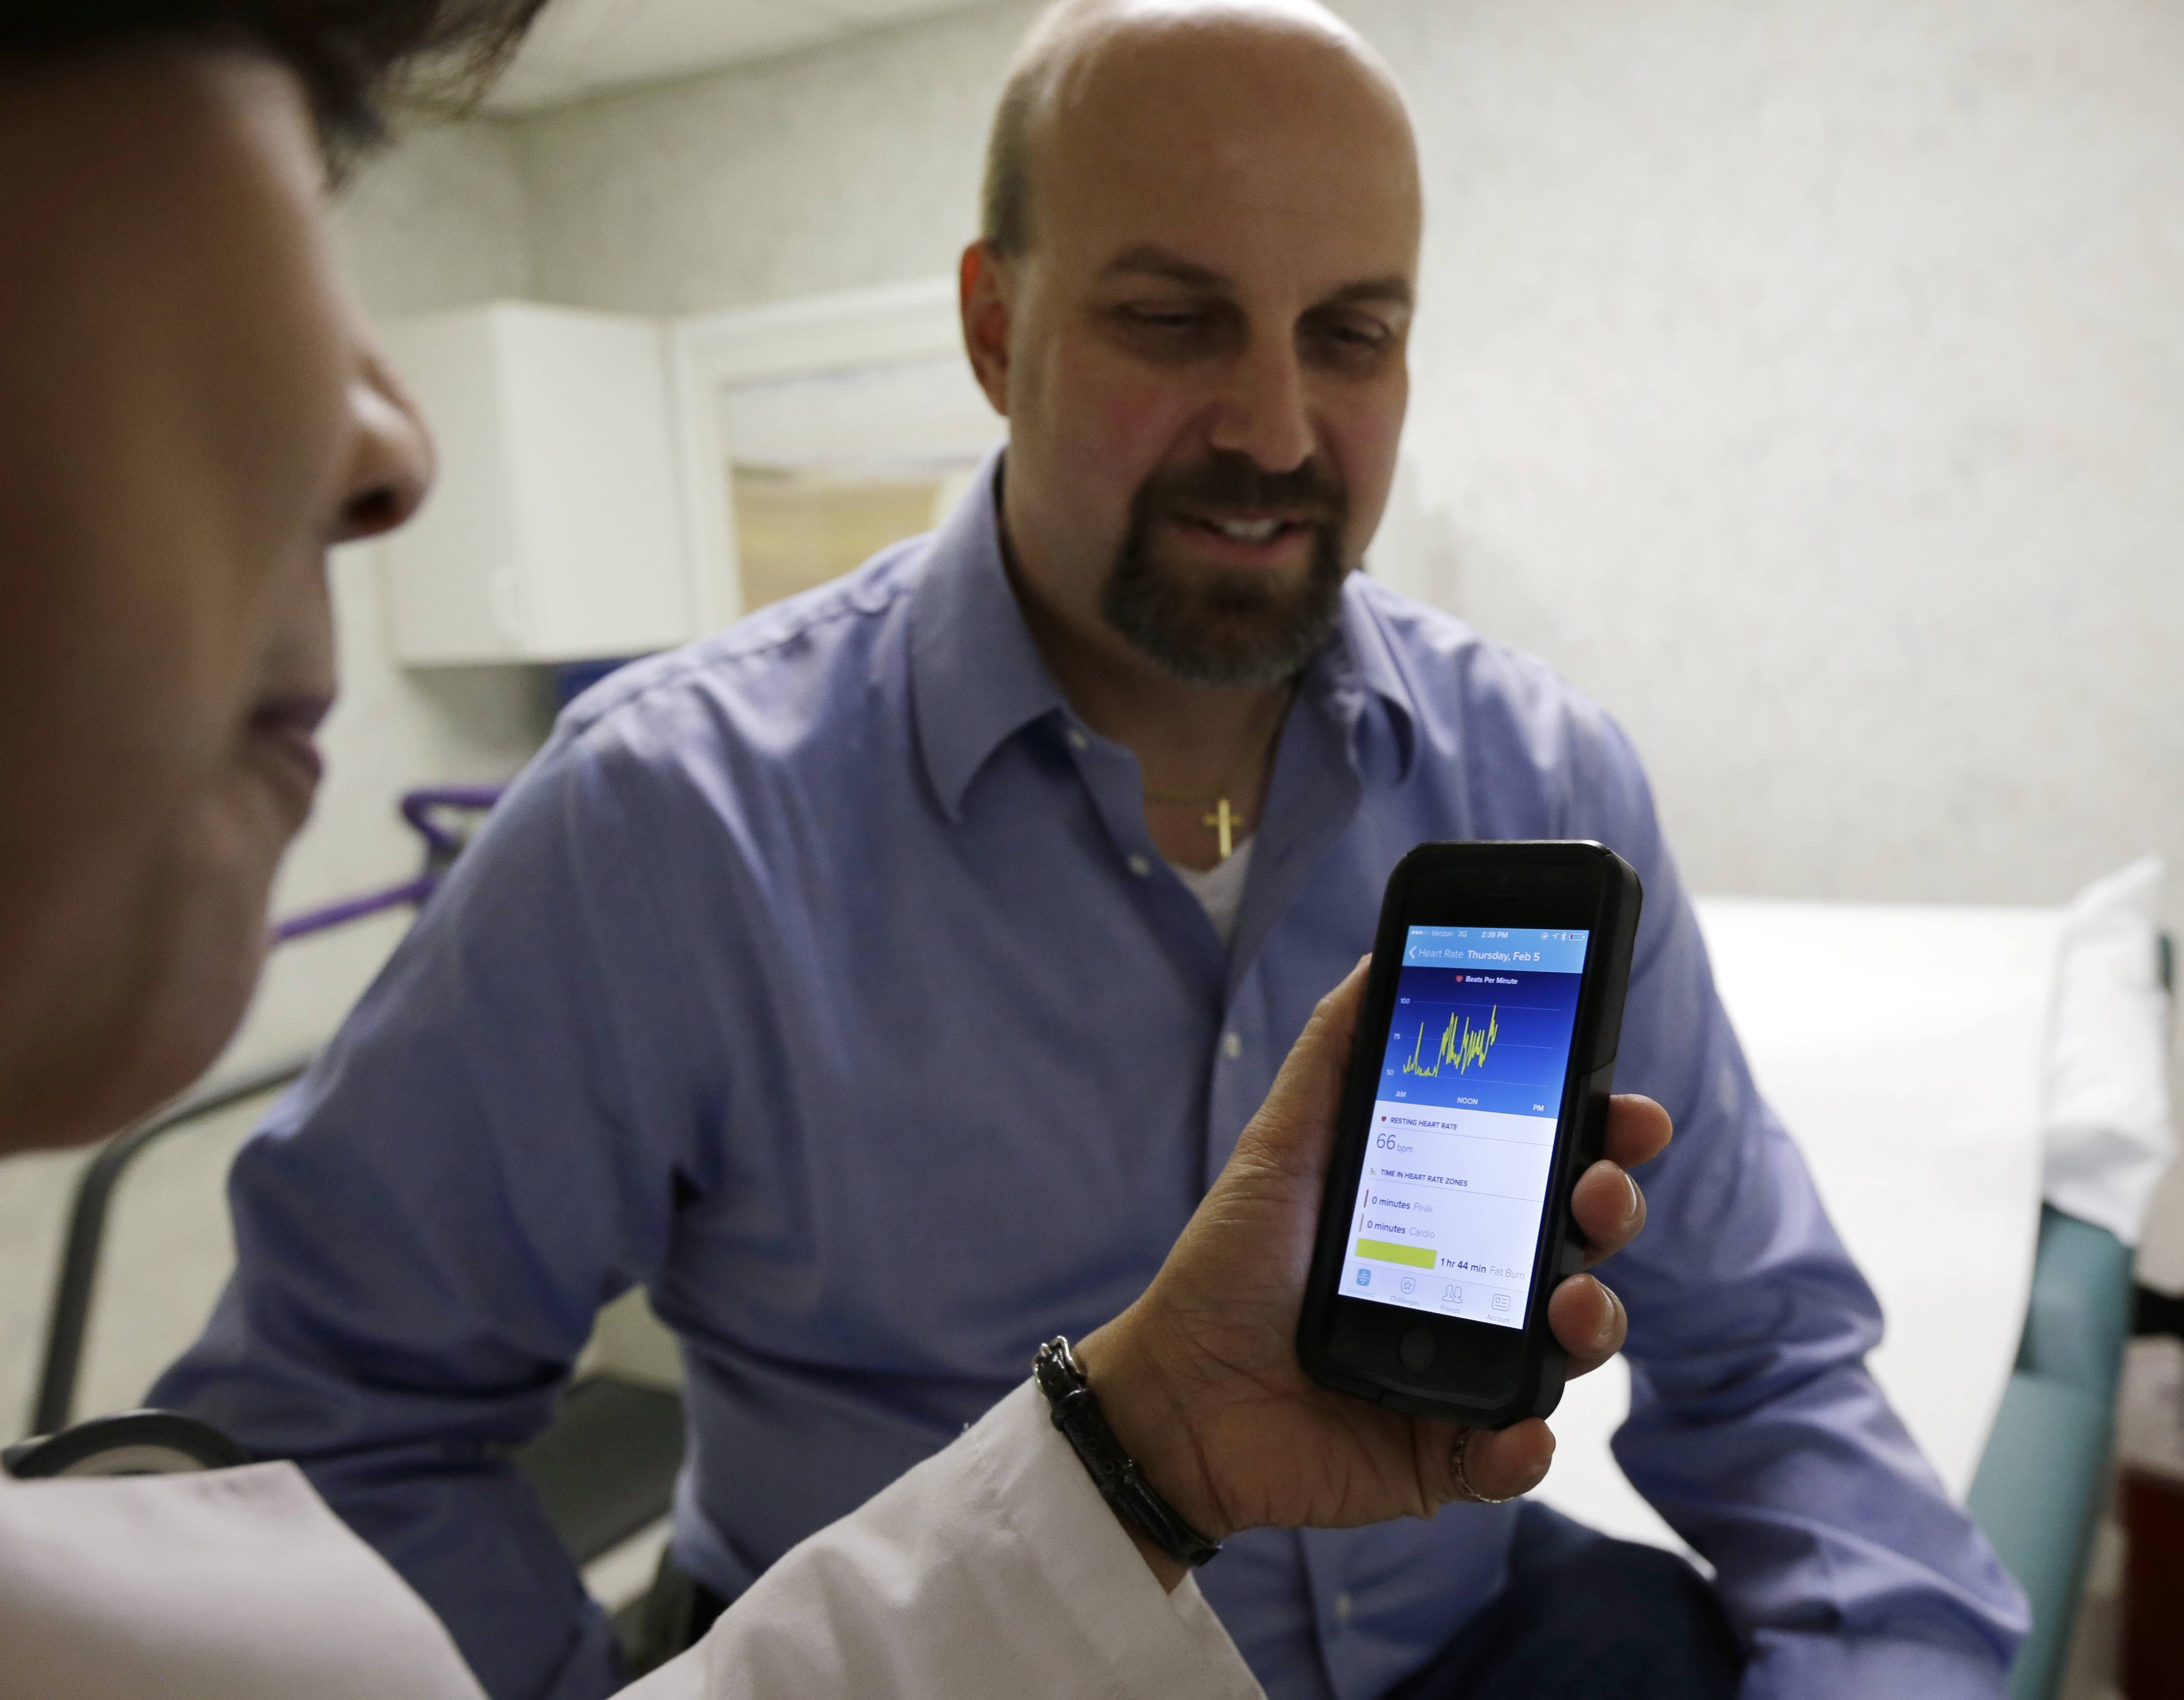 Hackensack University Medical Center cardiologist Dr. Sarah Timmapuri, left, looks at data on a smartphone synchronized to a new Fitbit Surge worn by patient Gary Wilhelm, 51, during an examination in Hackensack, N.J. Wilhelm, who works at Hackensack University Medical Center on payroll and finance technology, joined Hackensack's app test after he suffered a heart attack in October.